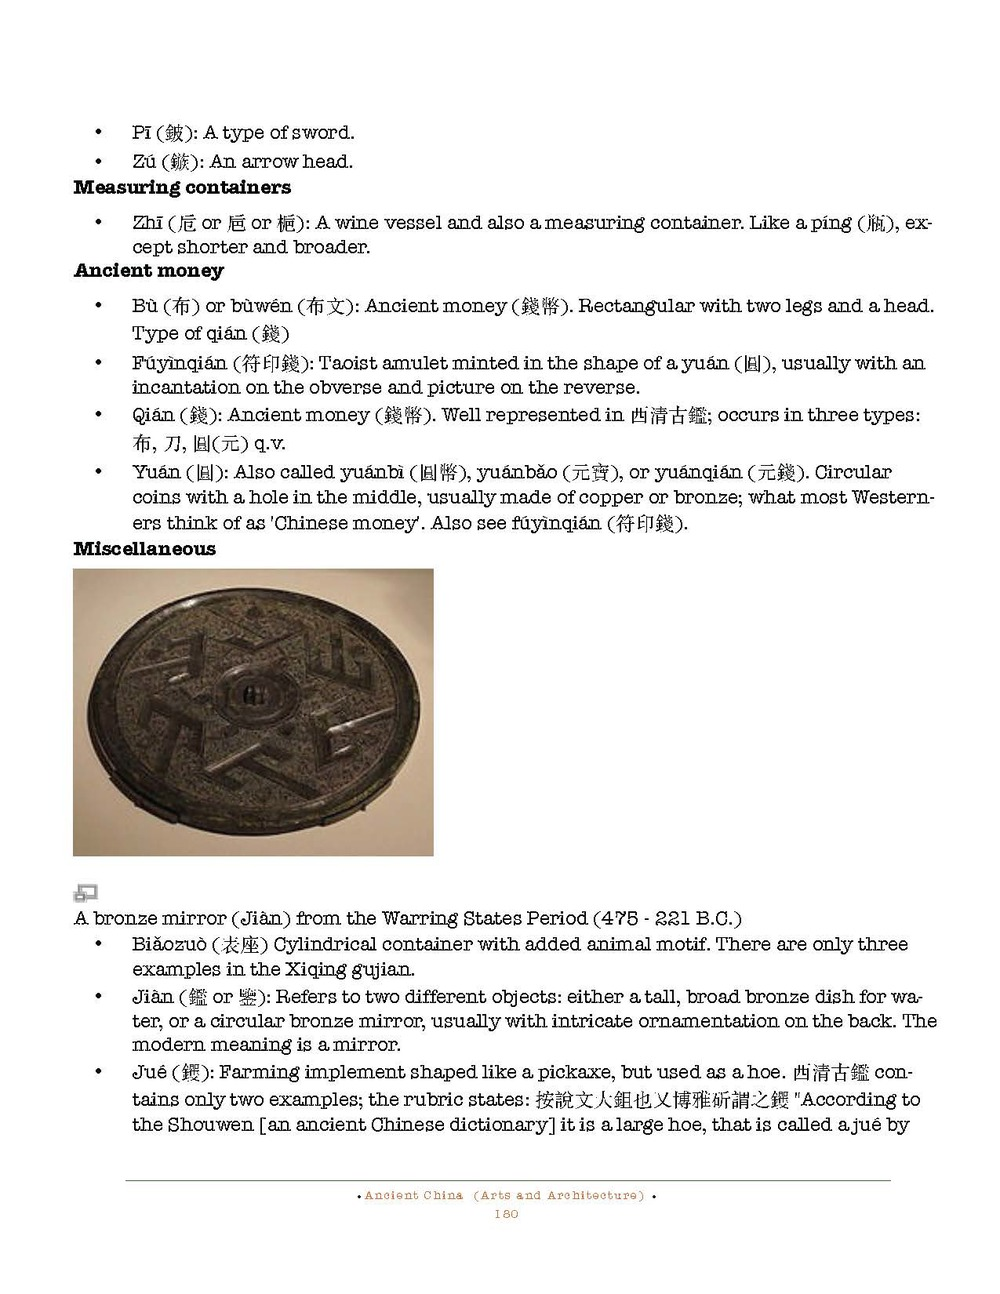 HOCE- Ancient China Notes_Page_180.jpg